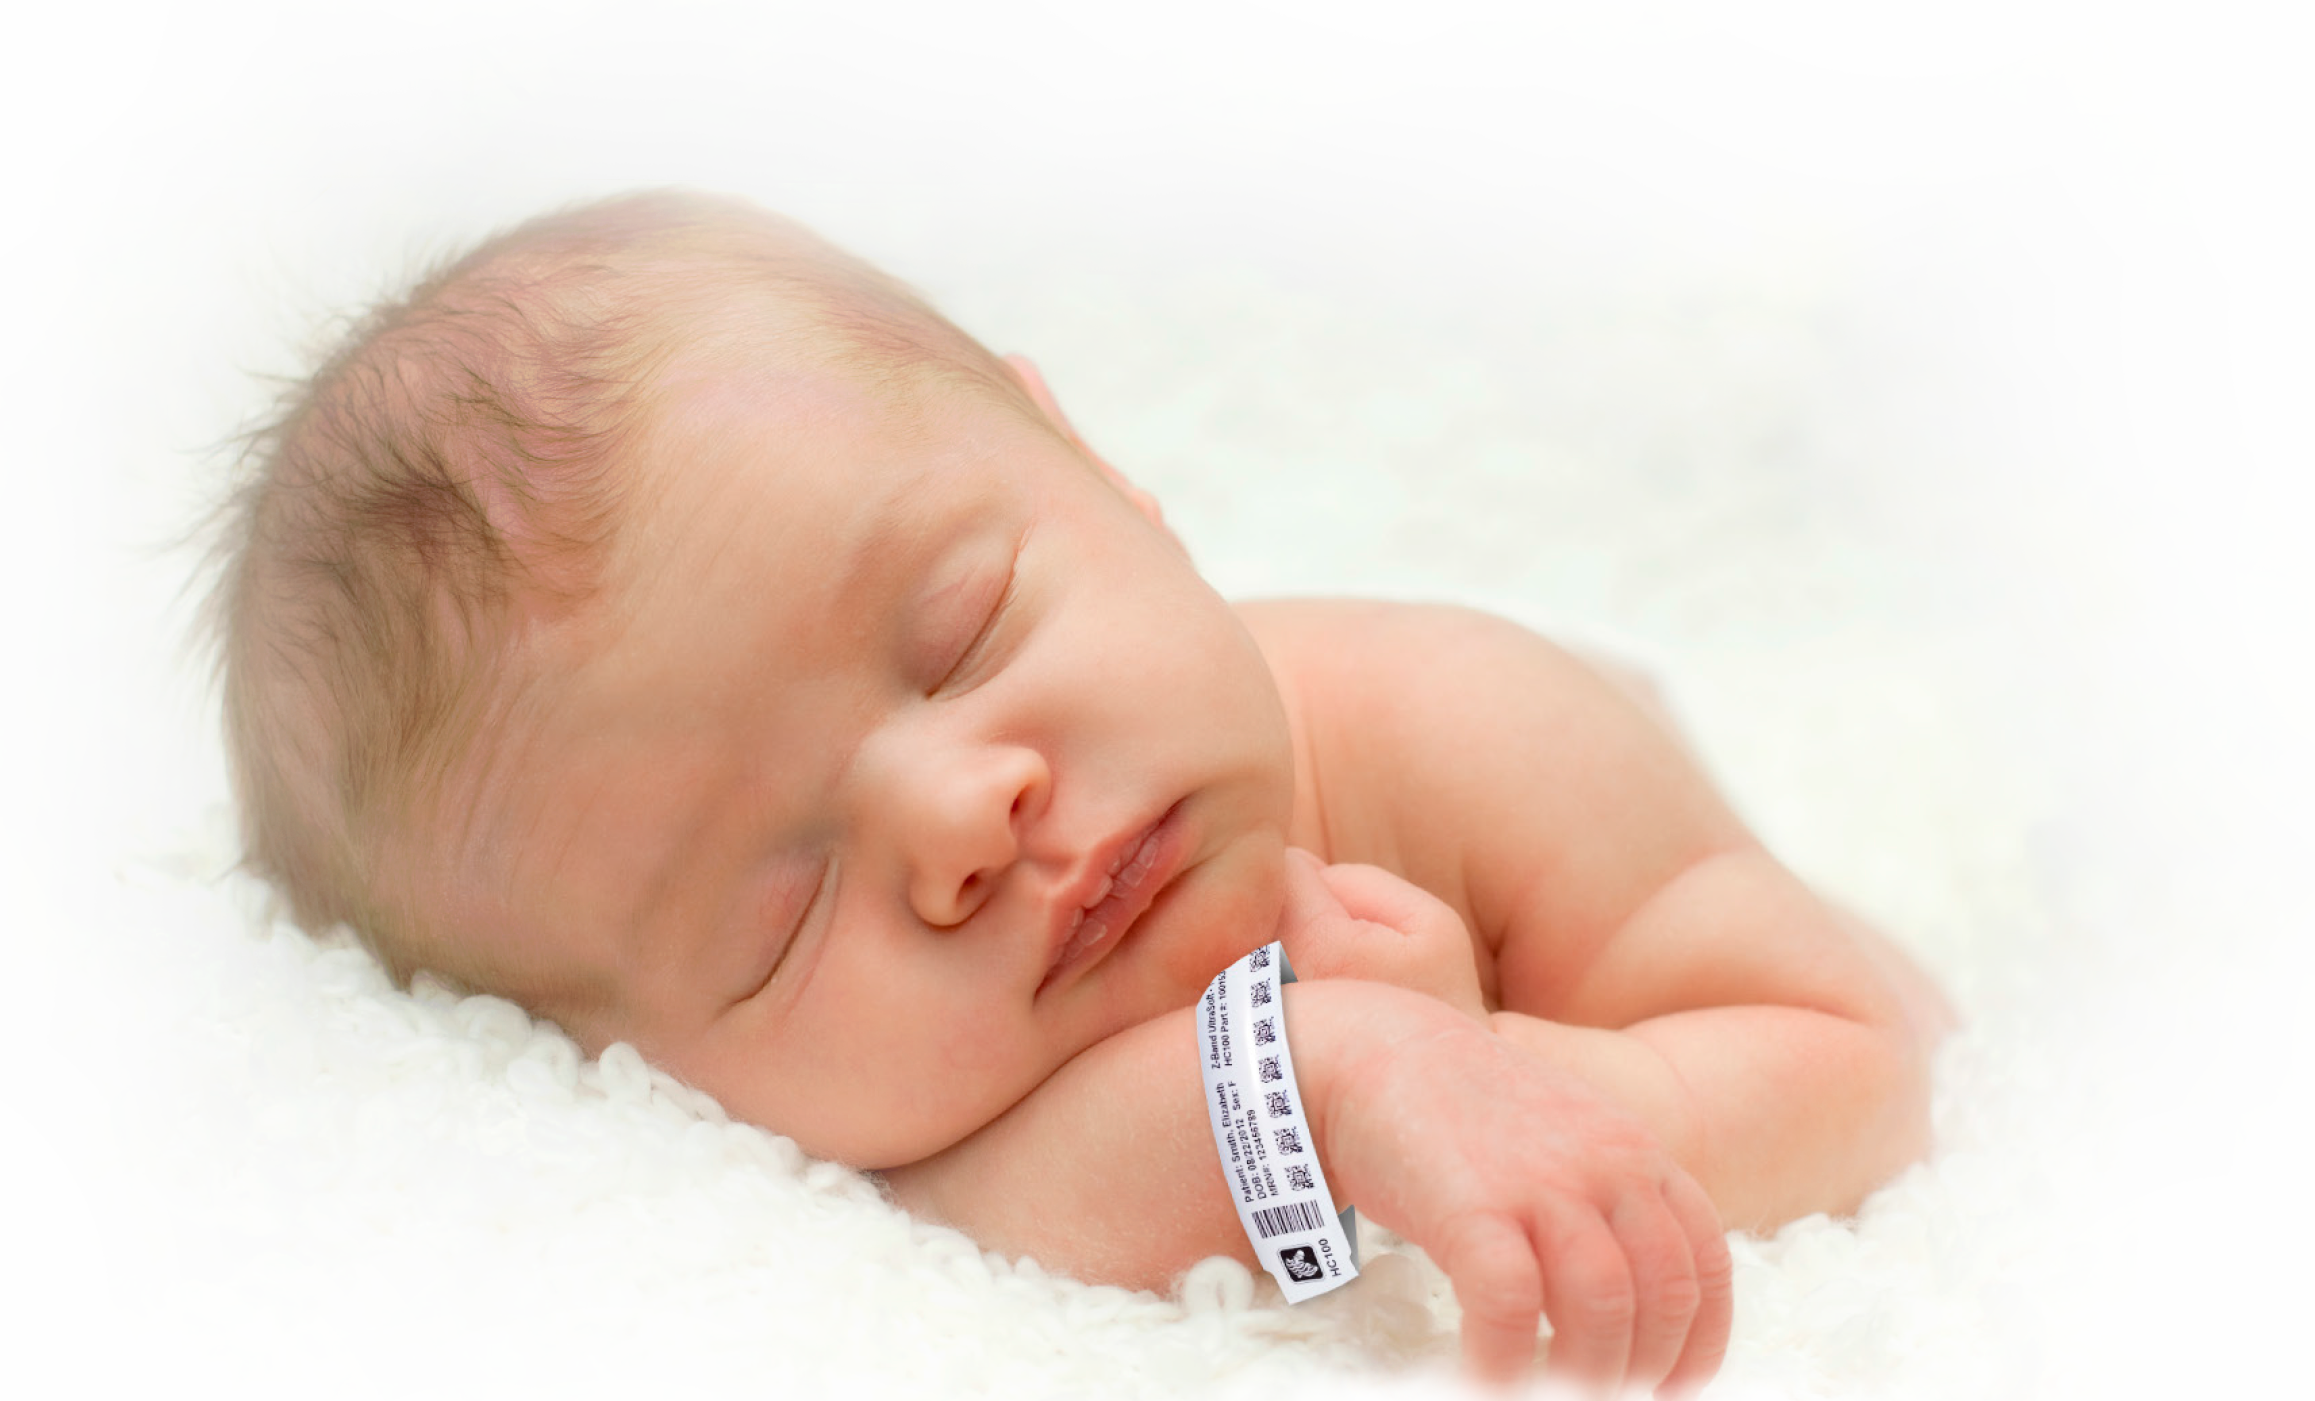 Baby Wristband Healthcare Solutions